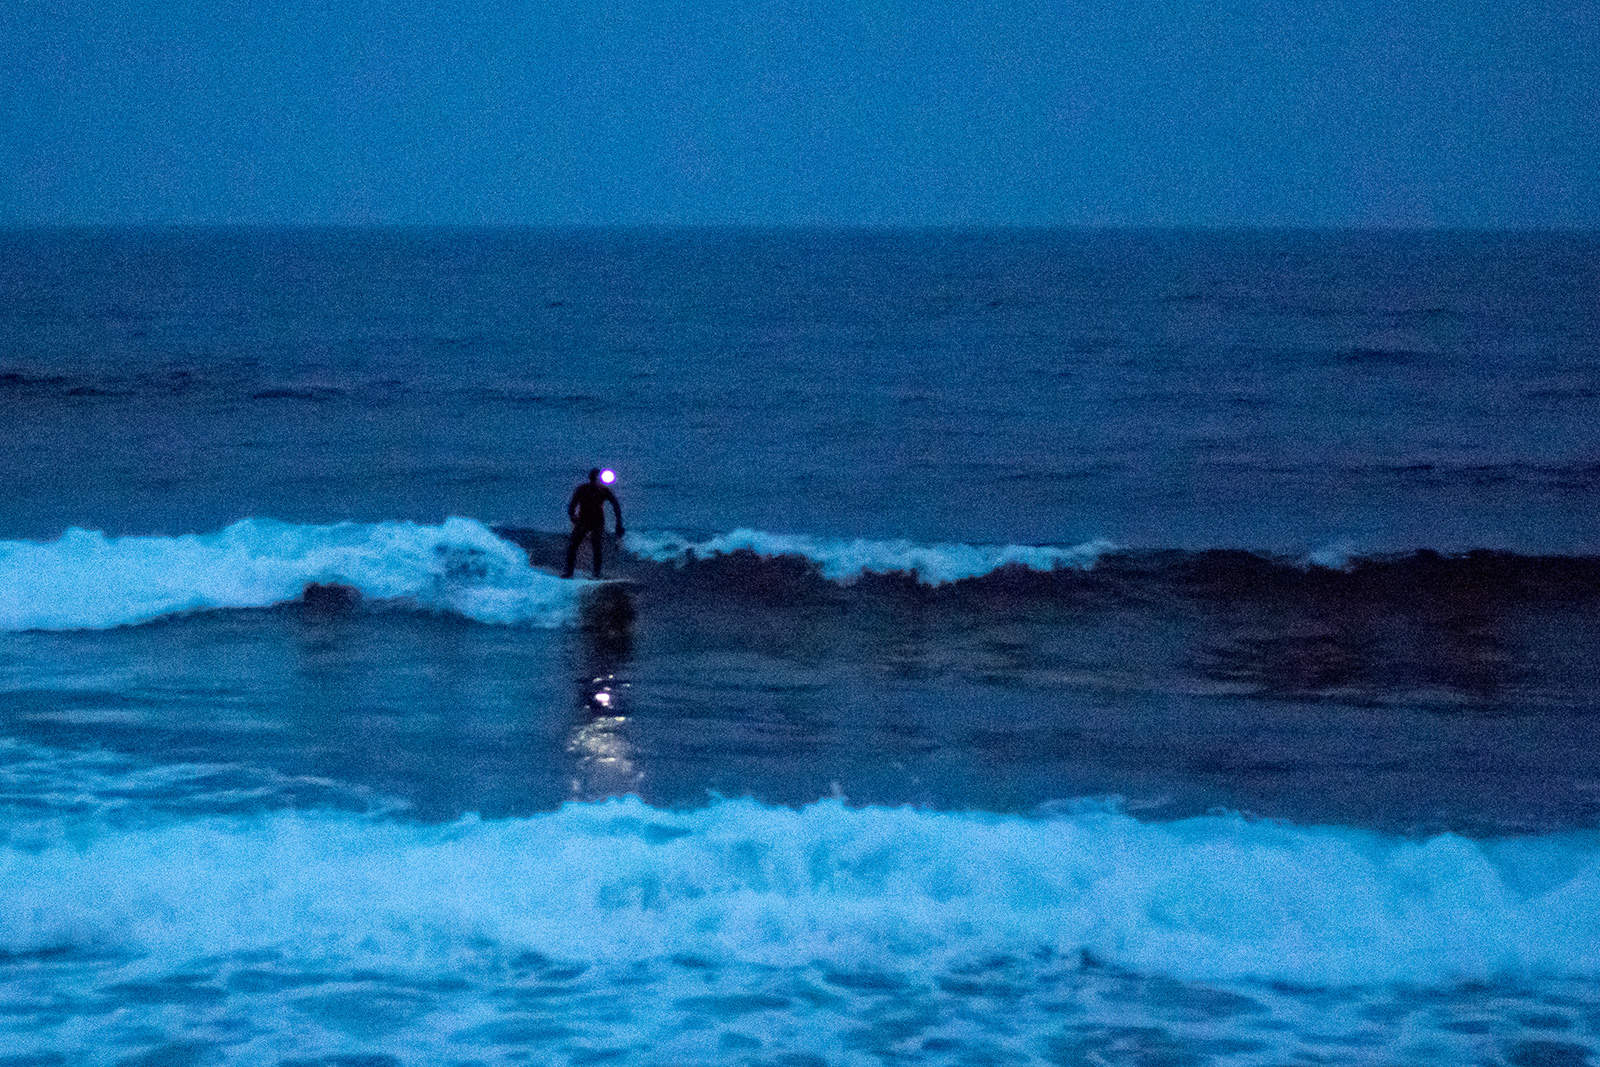 Night surfing with a headlamp. Photo: Miha Godec